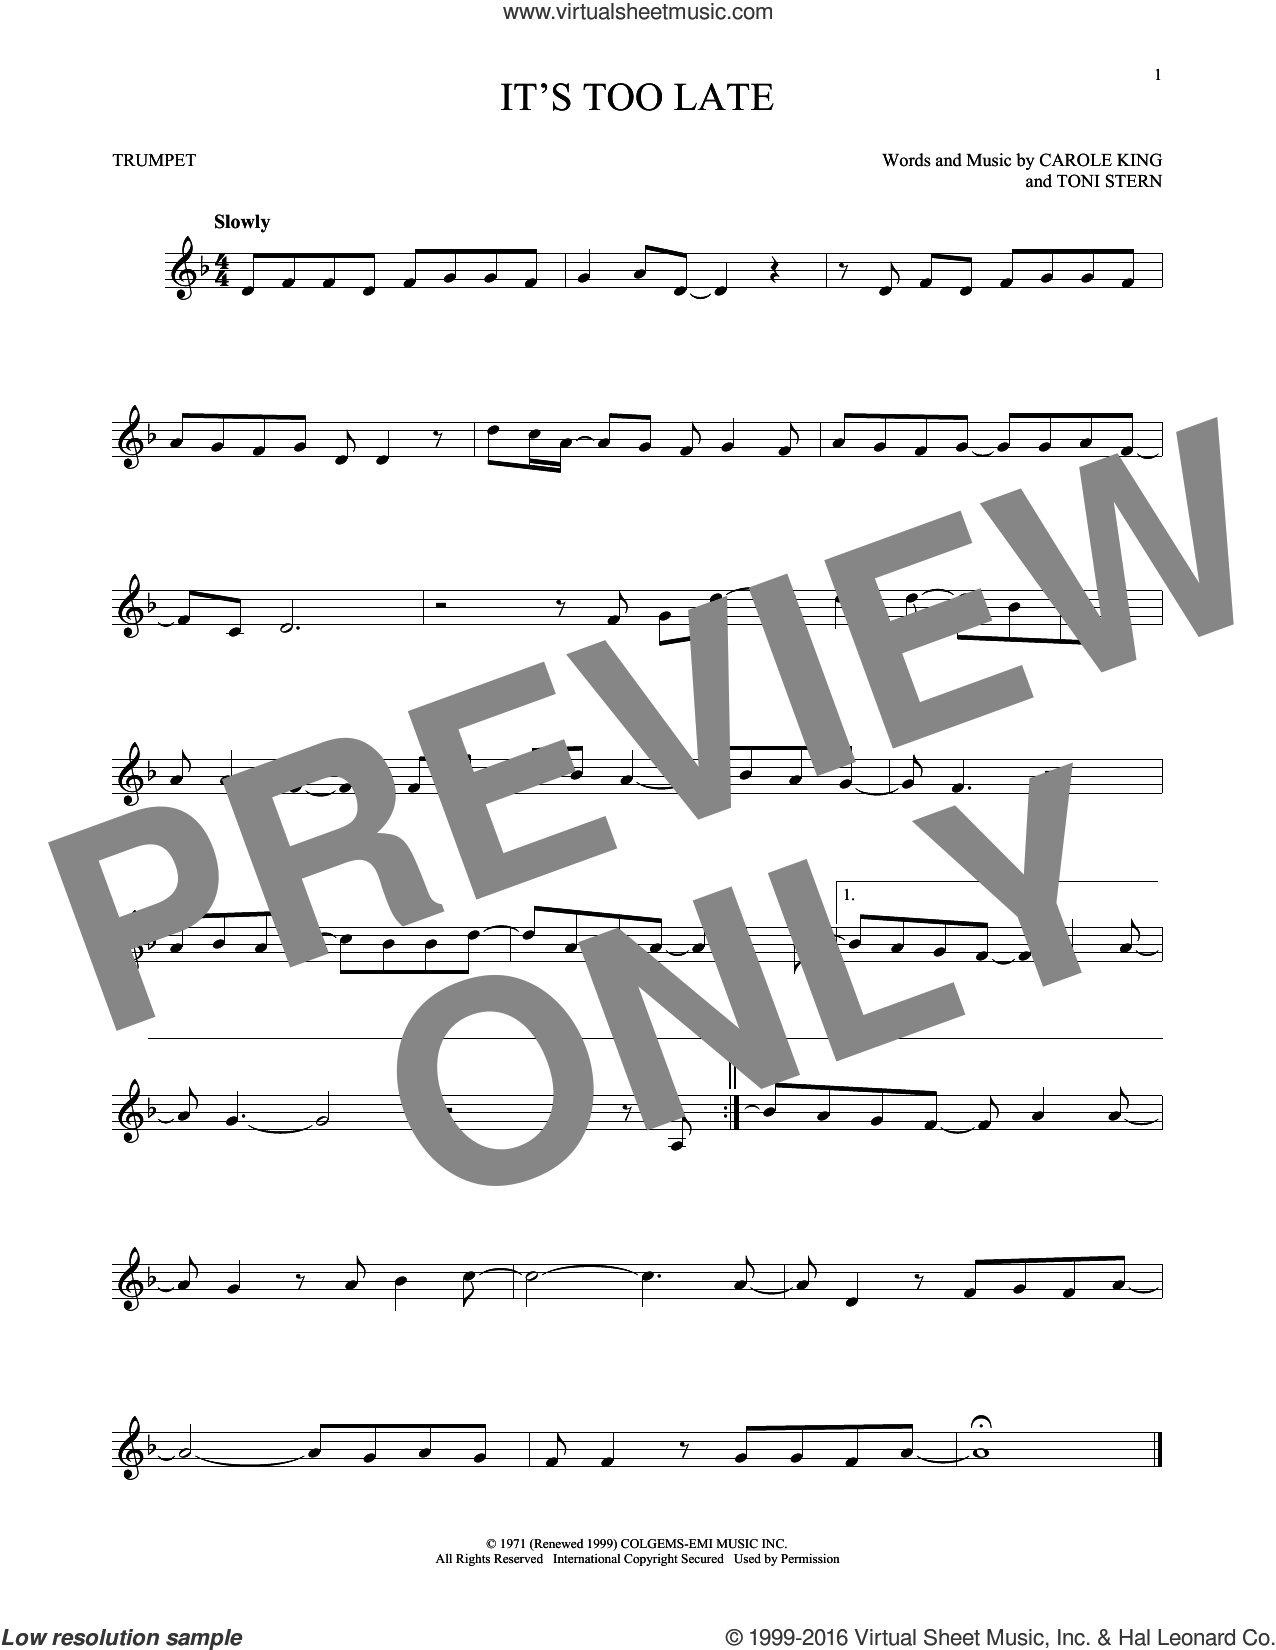 It's Too Late sheet music for trumpet solo by Carole King, Gloria Estefan and Toni Stern, intermediate skill level